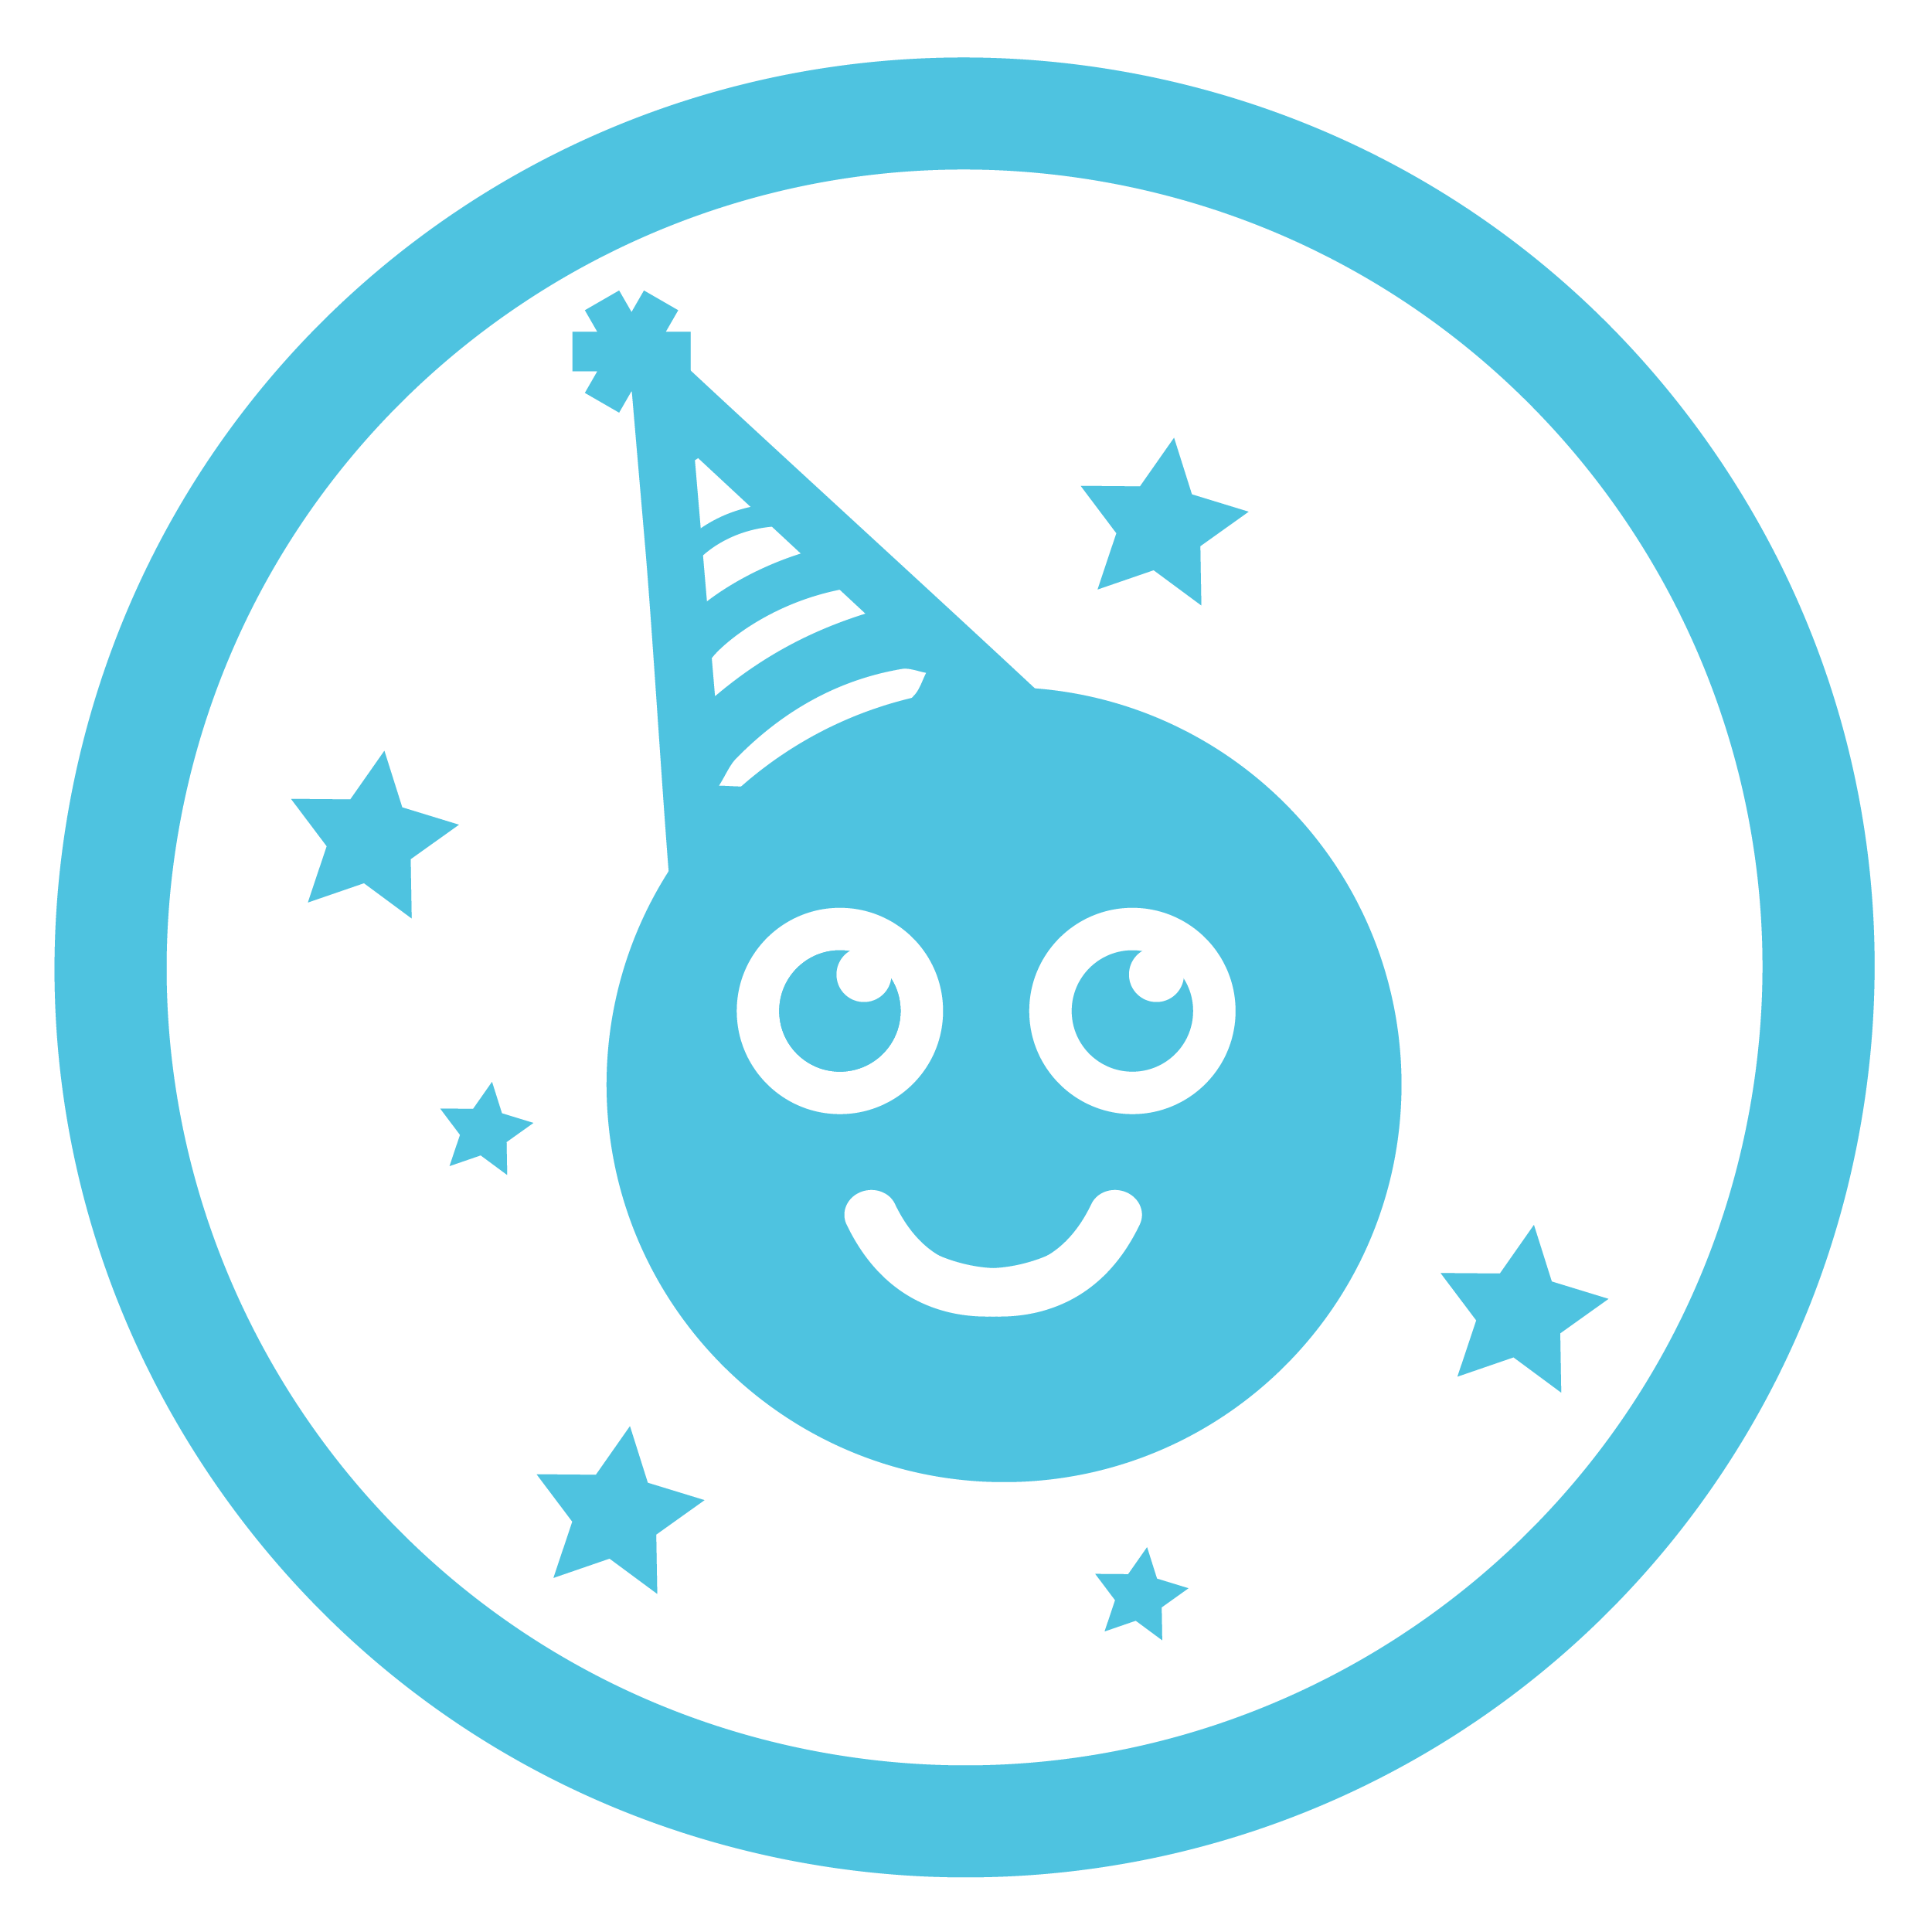 A blue circle with a smiley face wearing a party hat inside it.